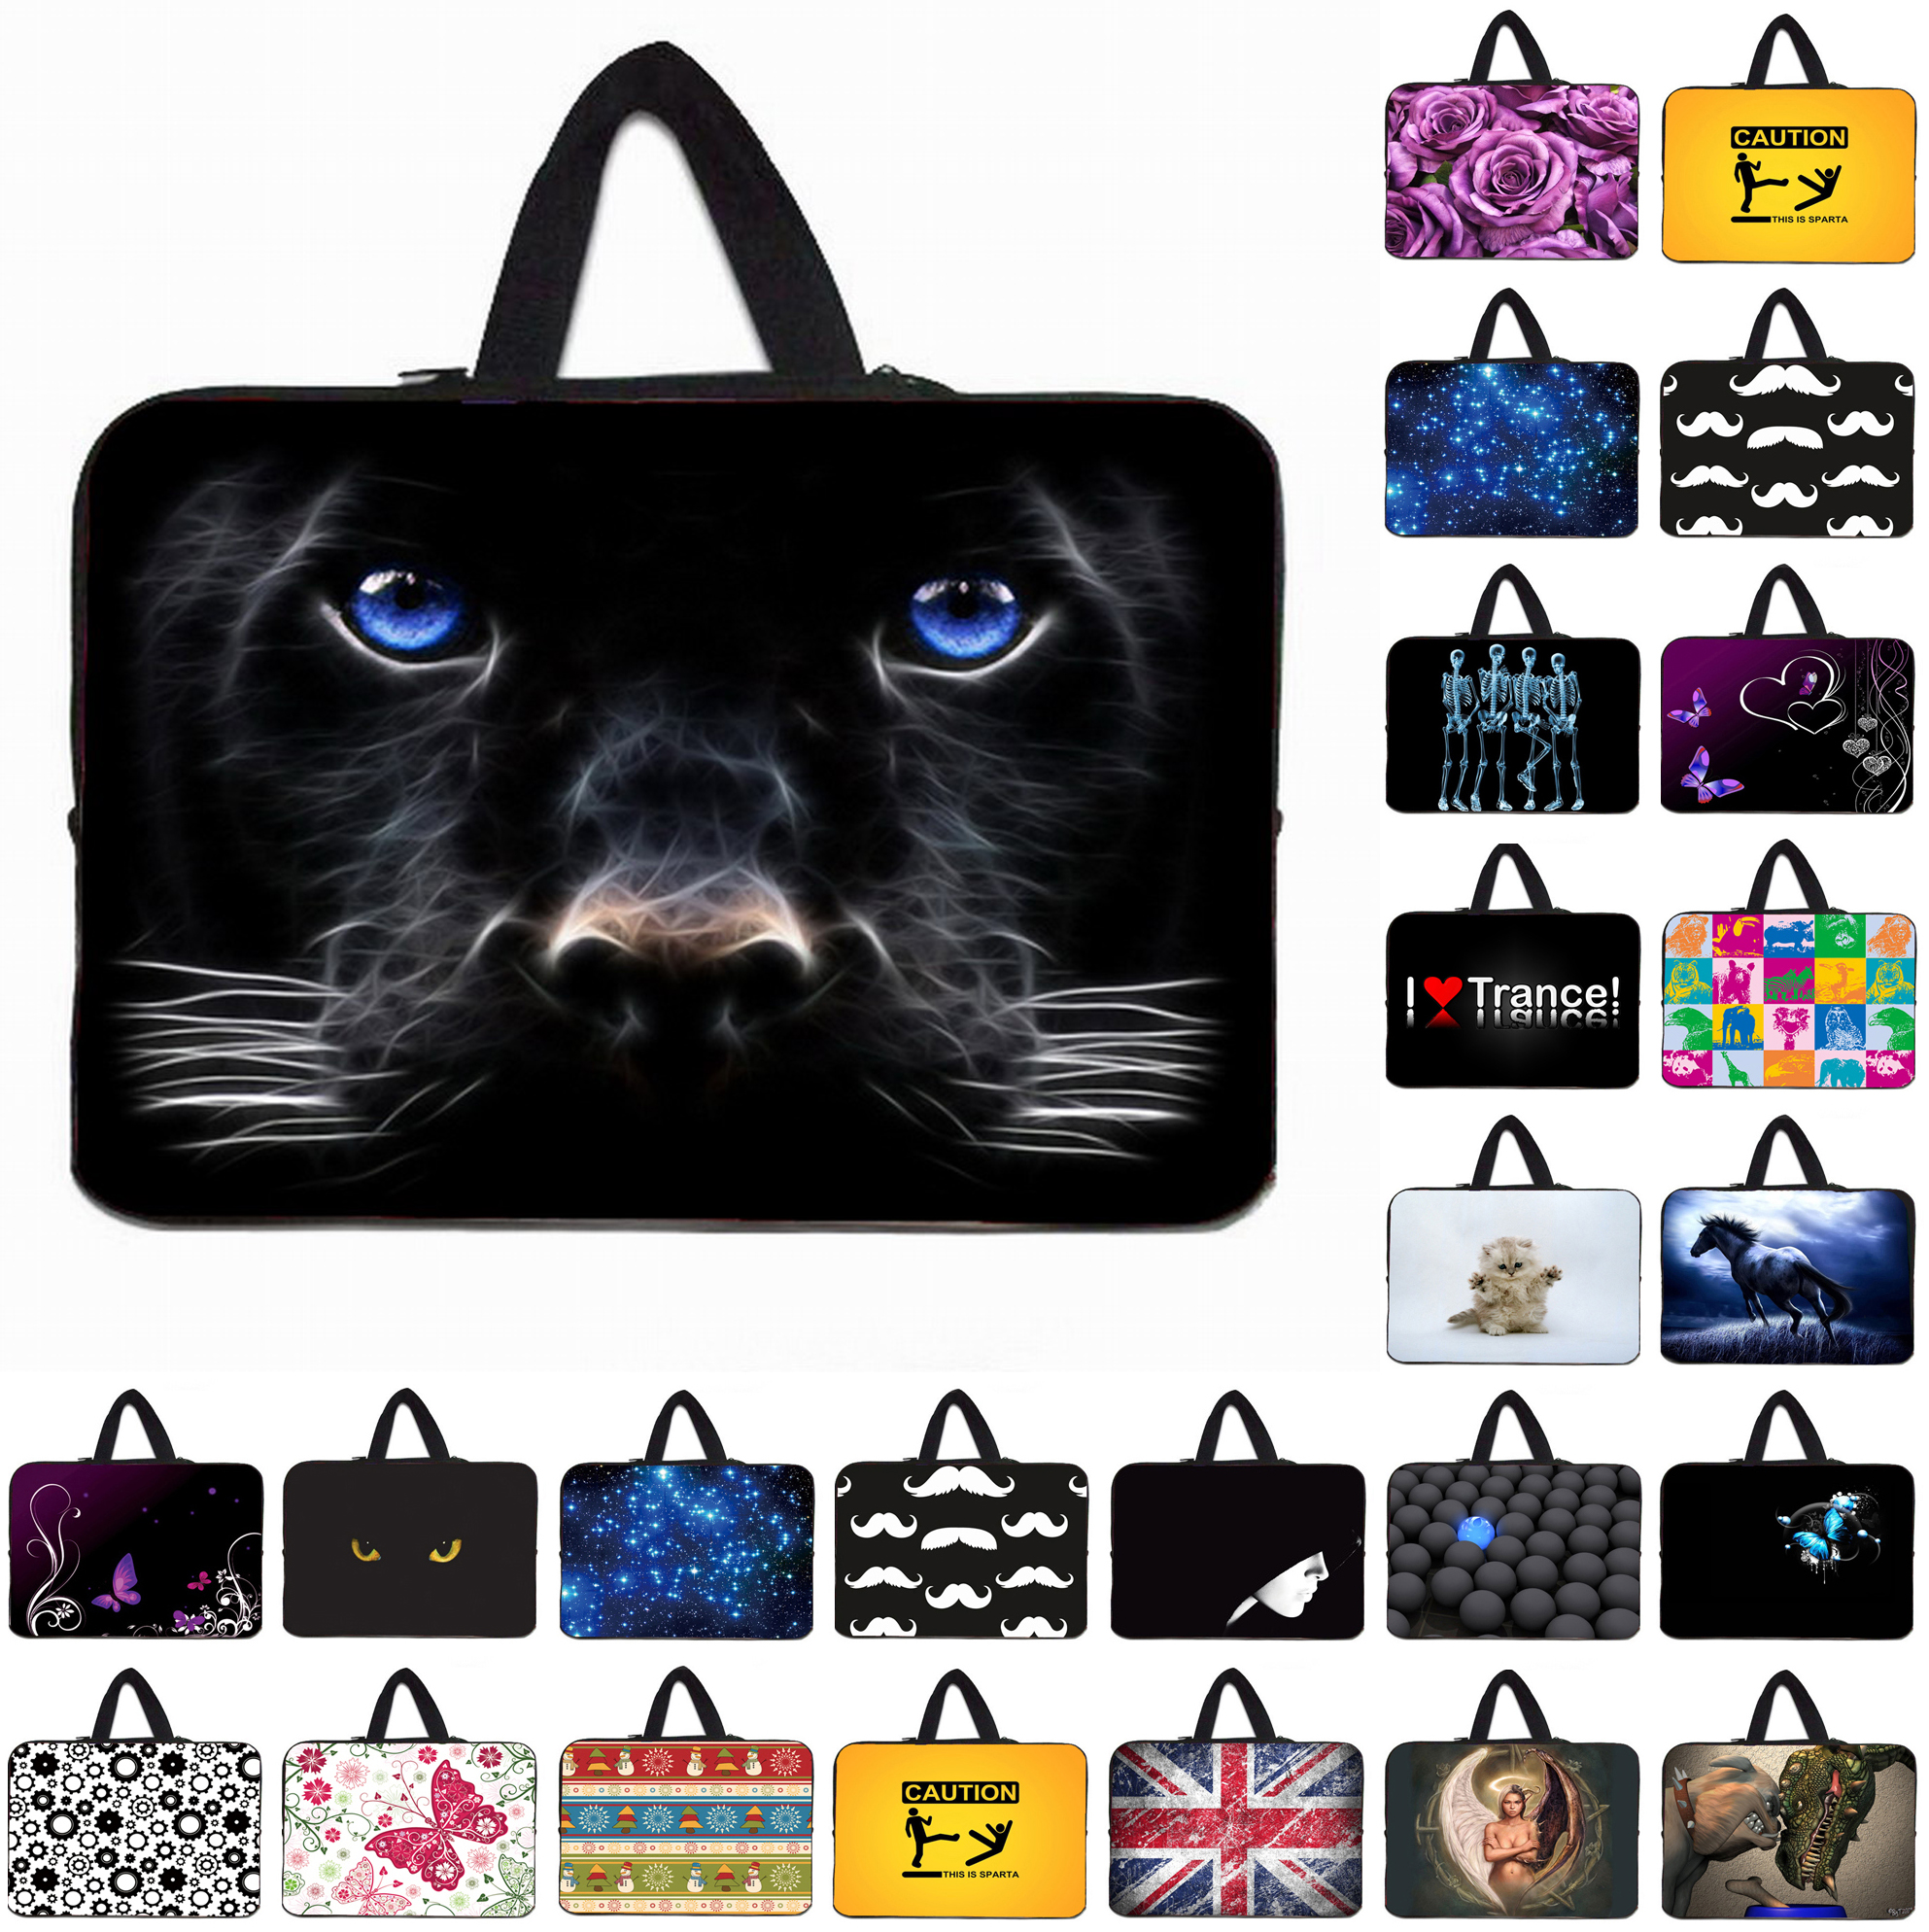 Animal Prints Notebook Laptop Bag 15.6 Zipper Sleeve Pouch Cover Bags For 10 12 13 14 15 17 inch Universal Netbook Mini Computer(China (Mainland))